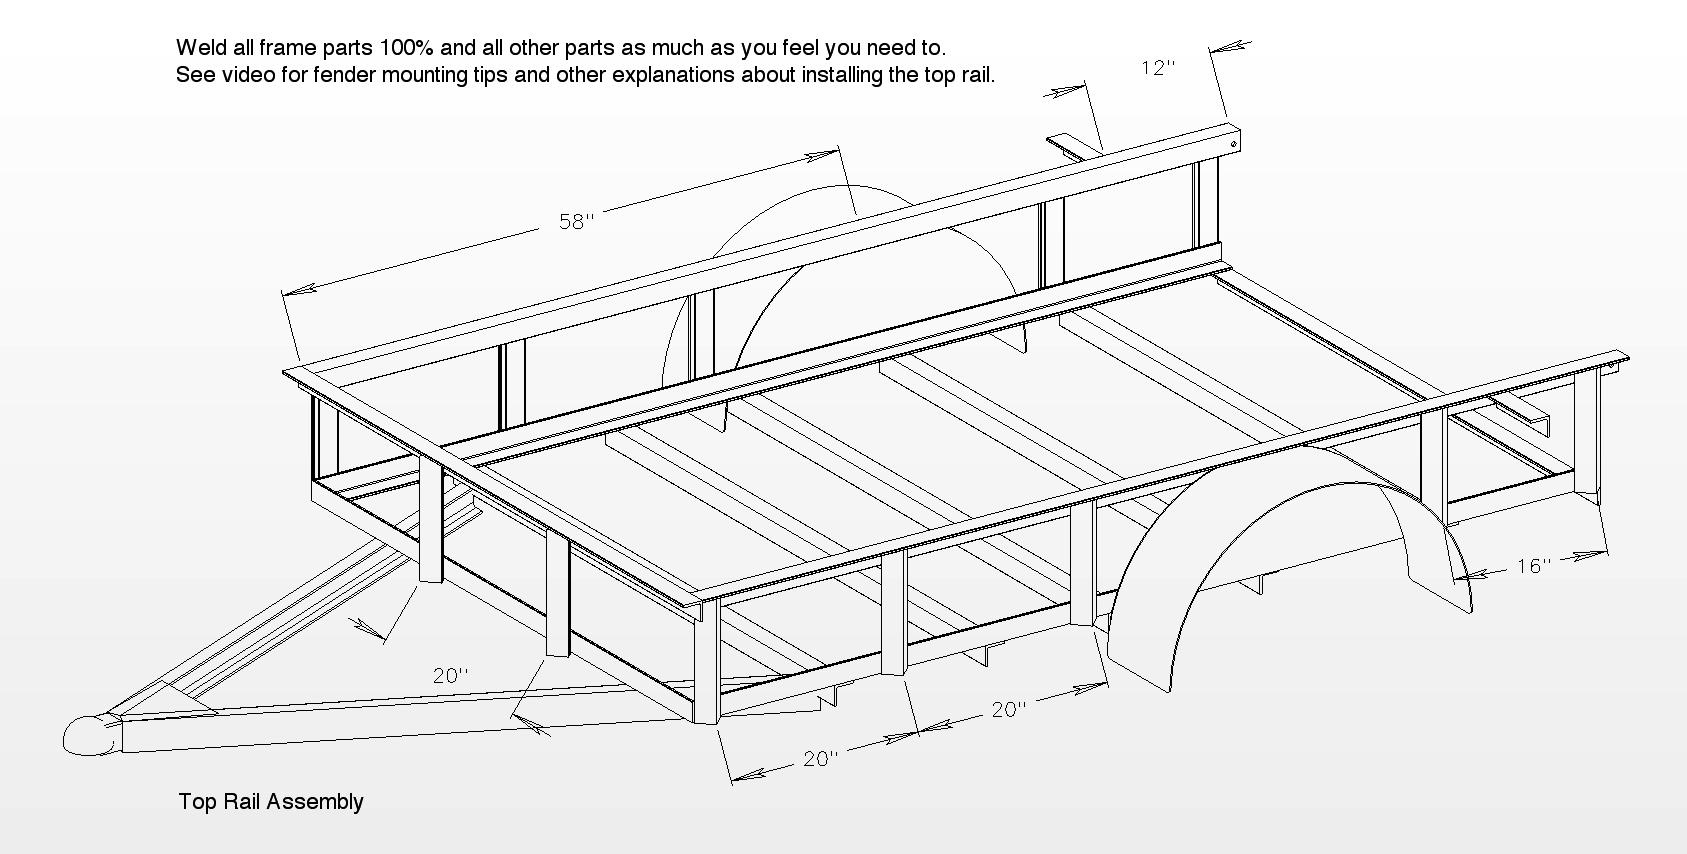 Dump Trailer Wiring Diagram together with Vehicle Dimensions also Truck Coloring Pages in addition Report145 likewise Mack Zugmaschine. on flatbed trailer blueprints